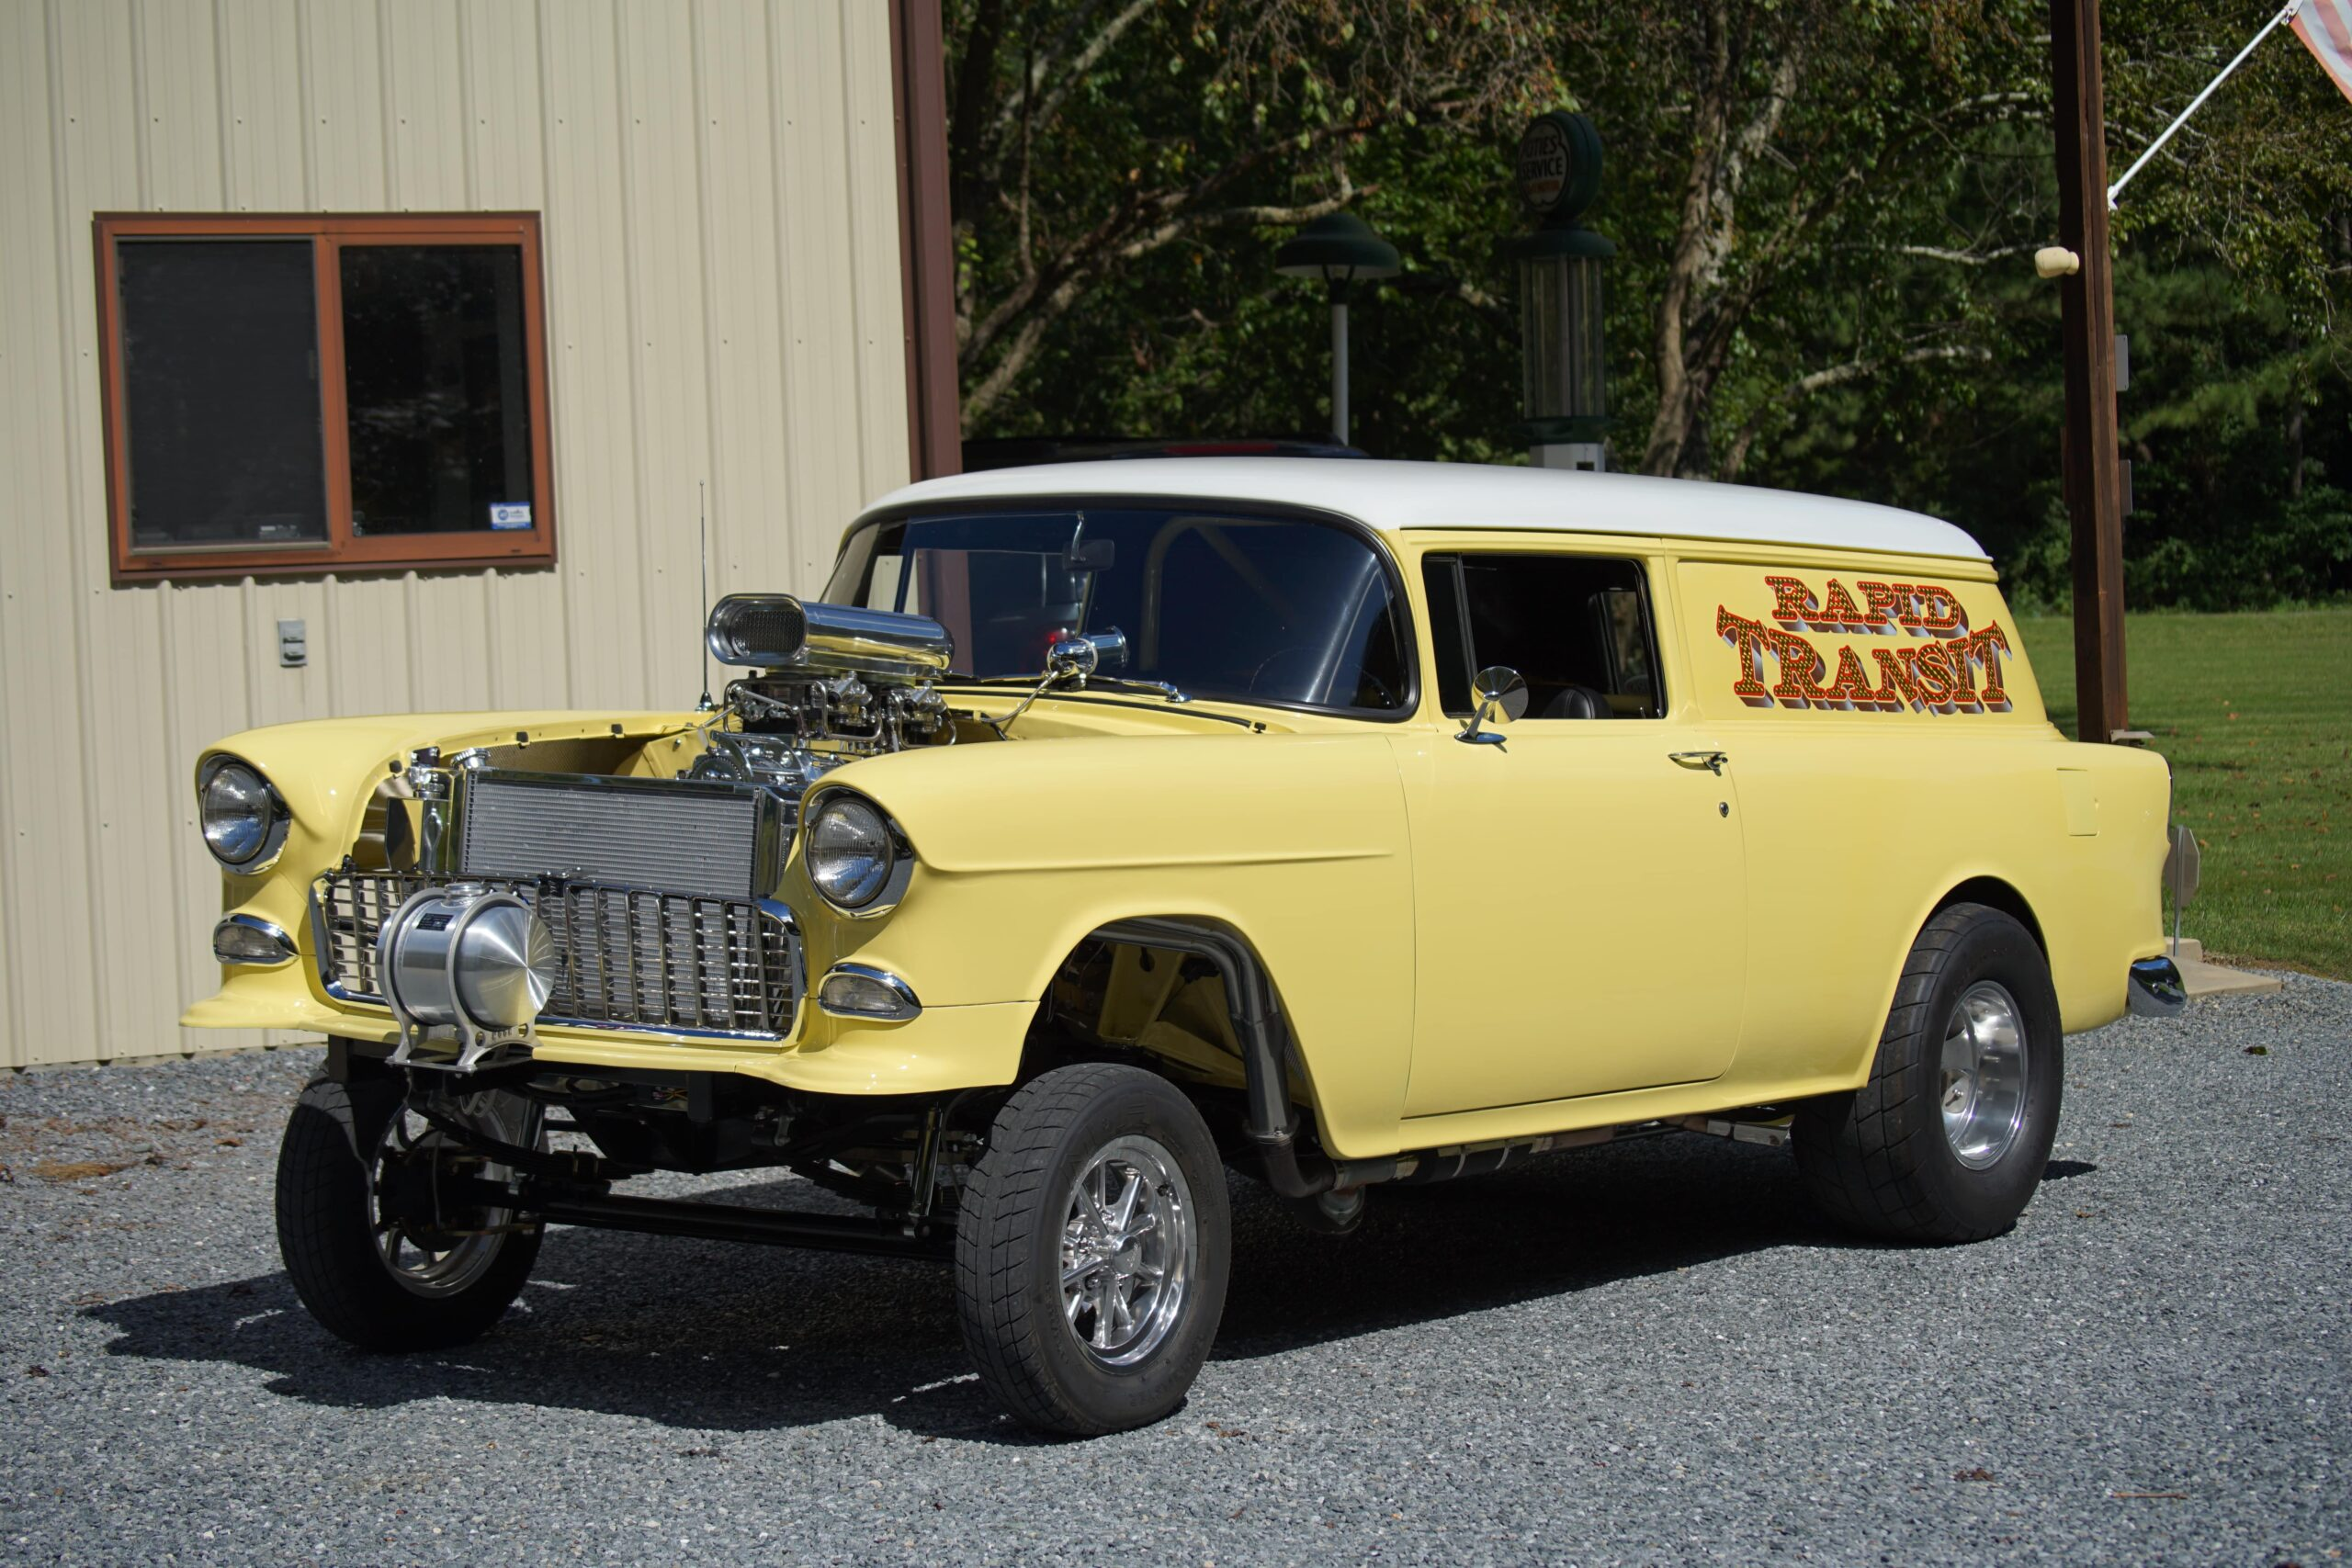 Don Van Bourgondien - Trappe, Maryland - 1955 Chevrolet Sedan Delivery Gasser